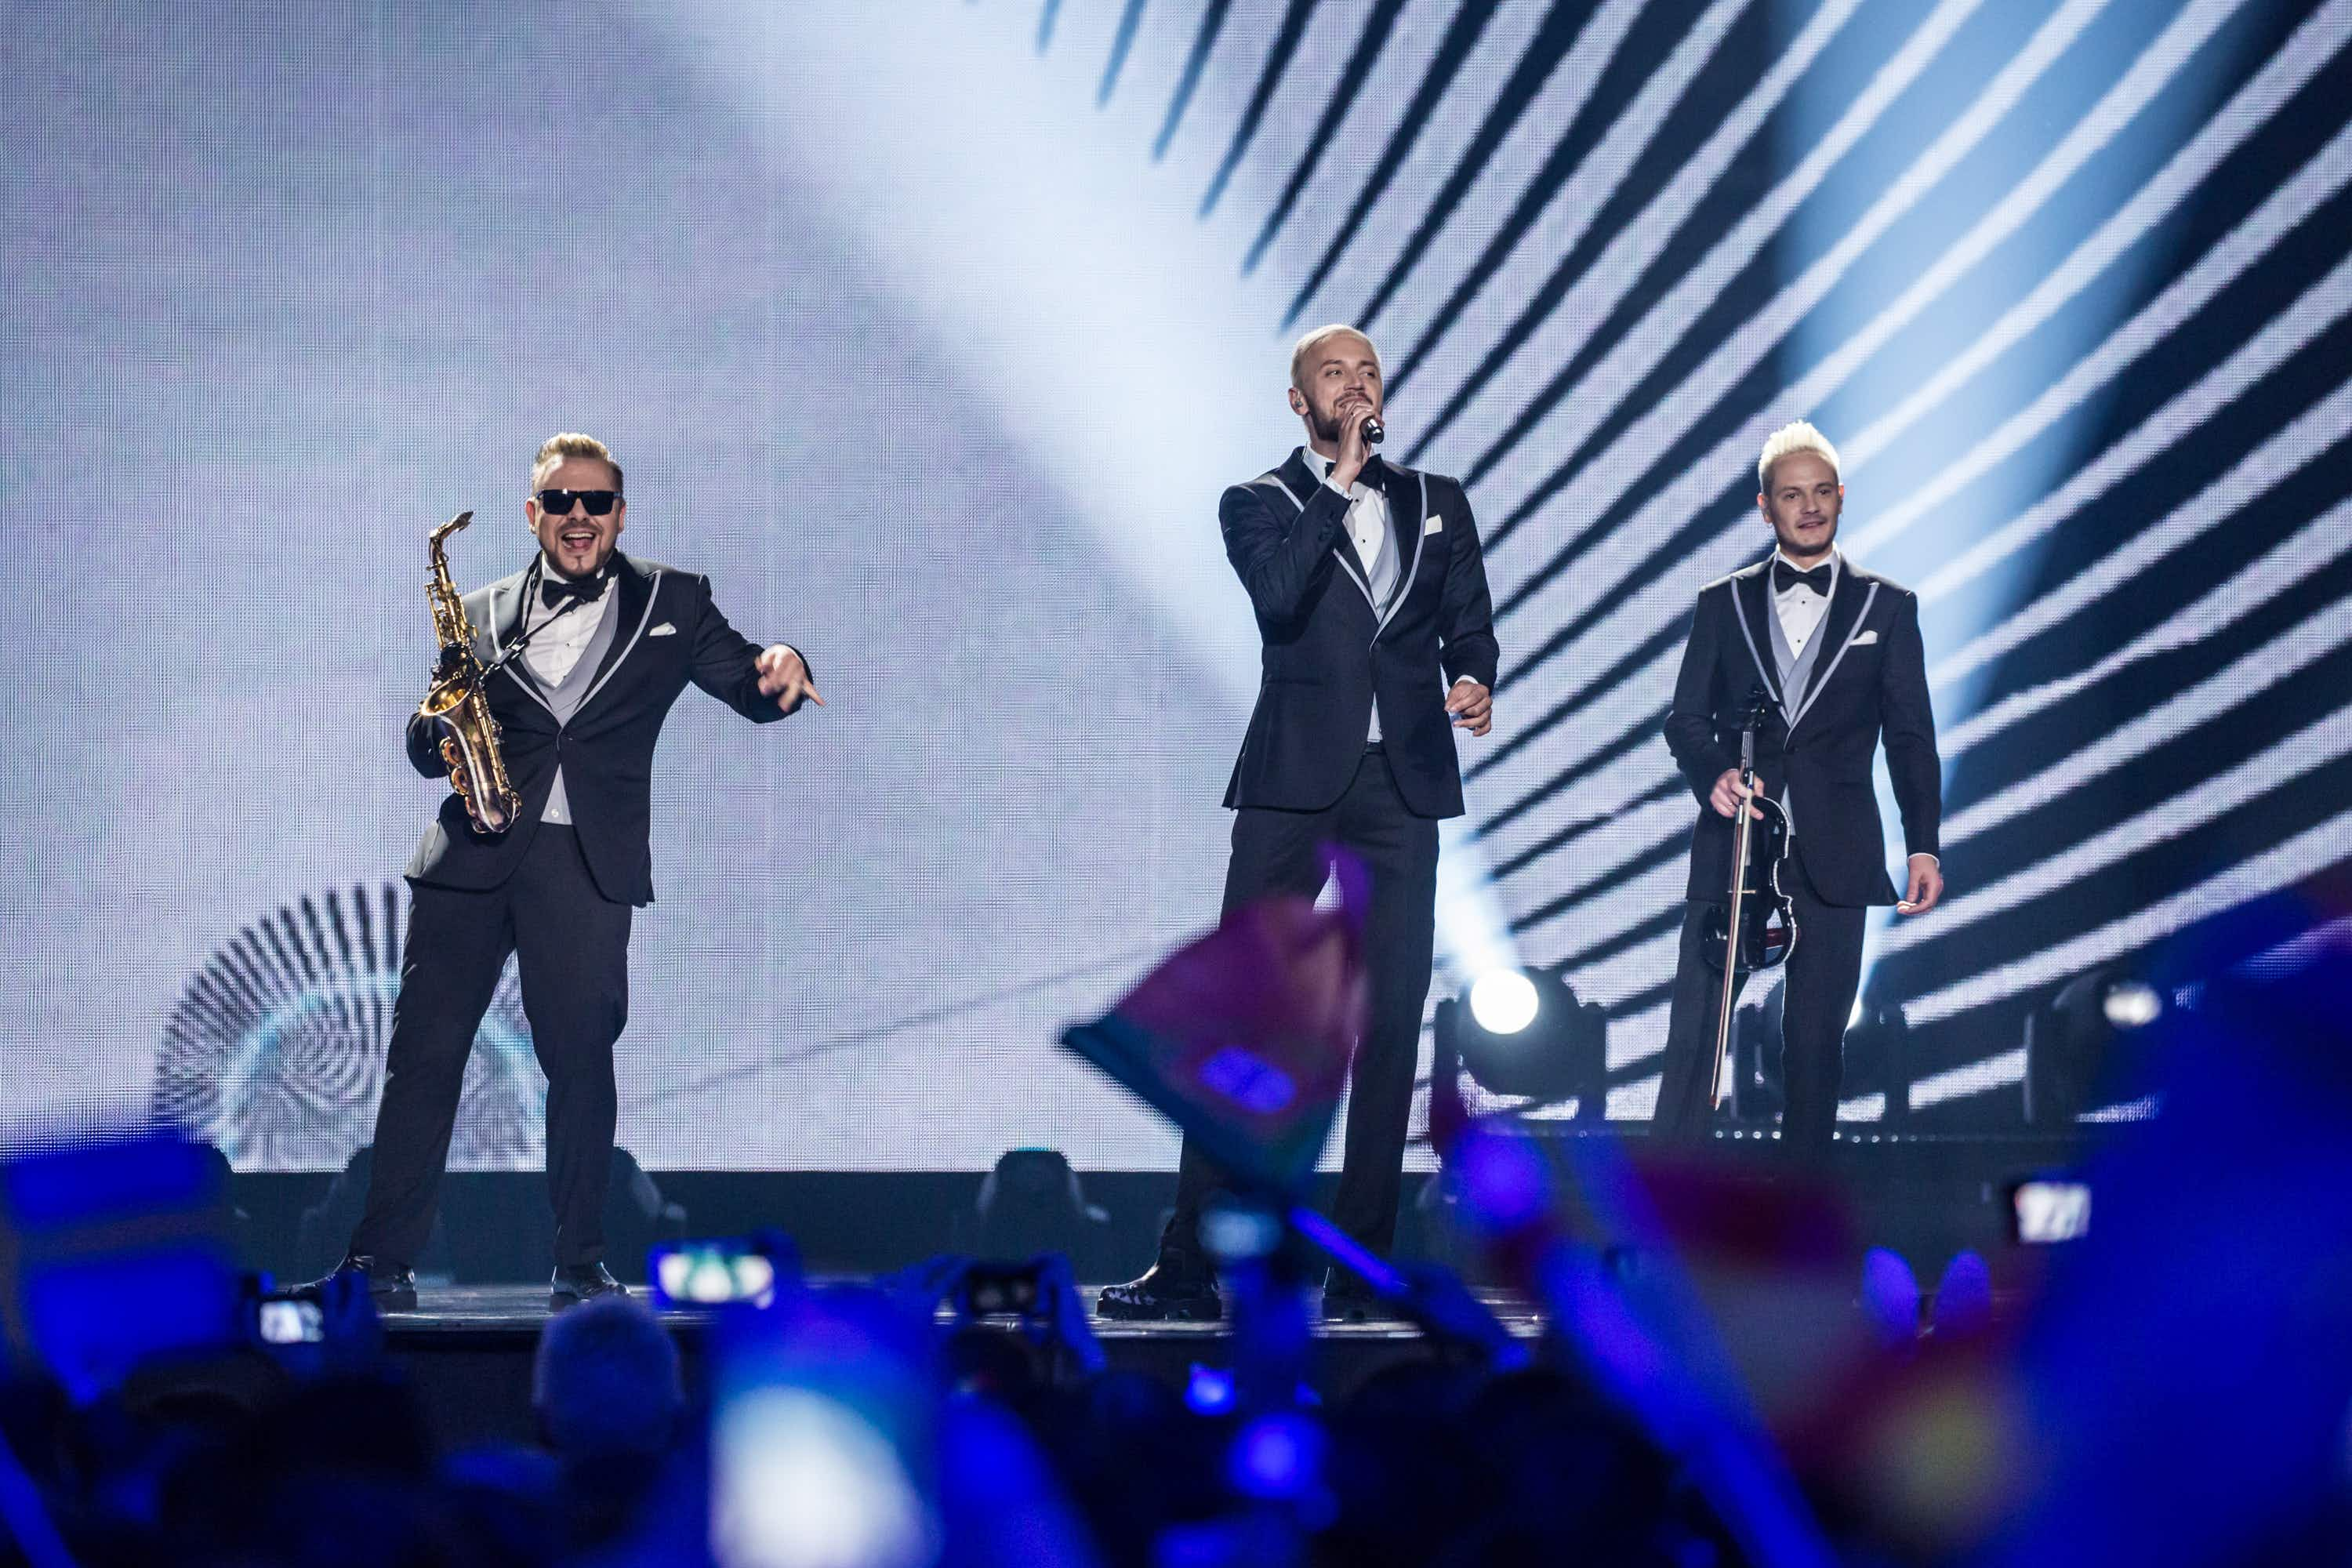 Eurovision's Epic Sax Guy tells people to stay at home during COVID-19 lockdown